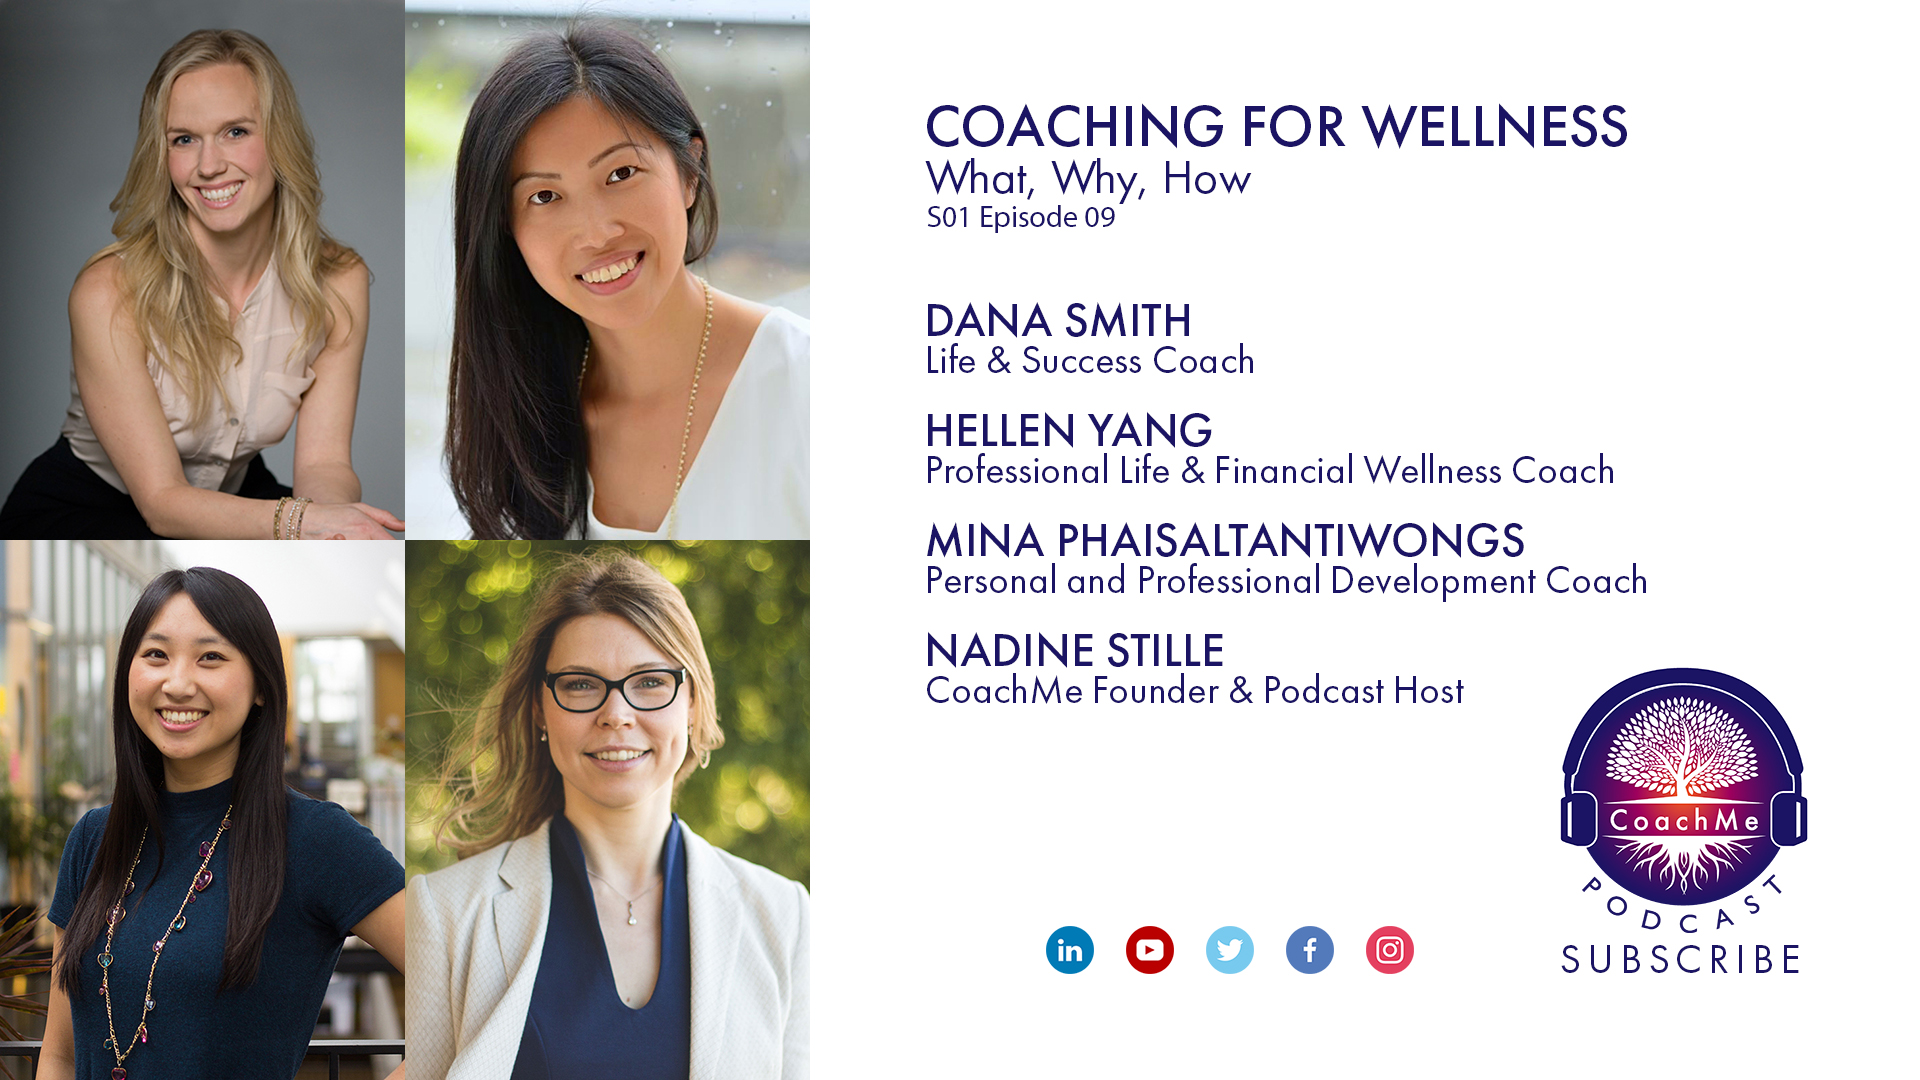 Coaches in Vancouver Podcast - Coaching For Wellness - CoachMe Vancouver